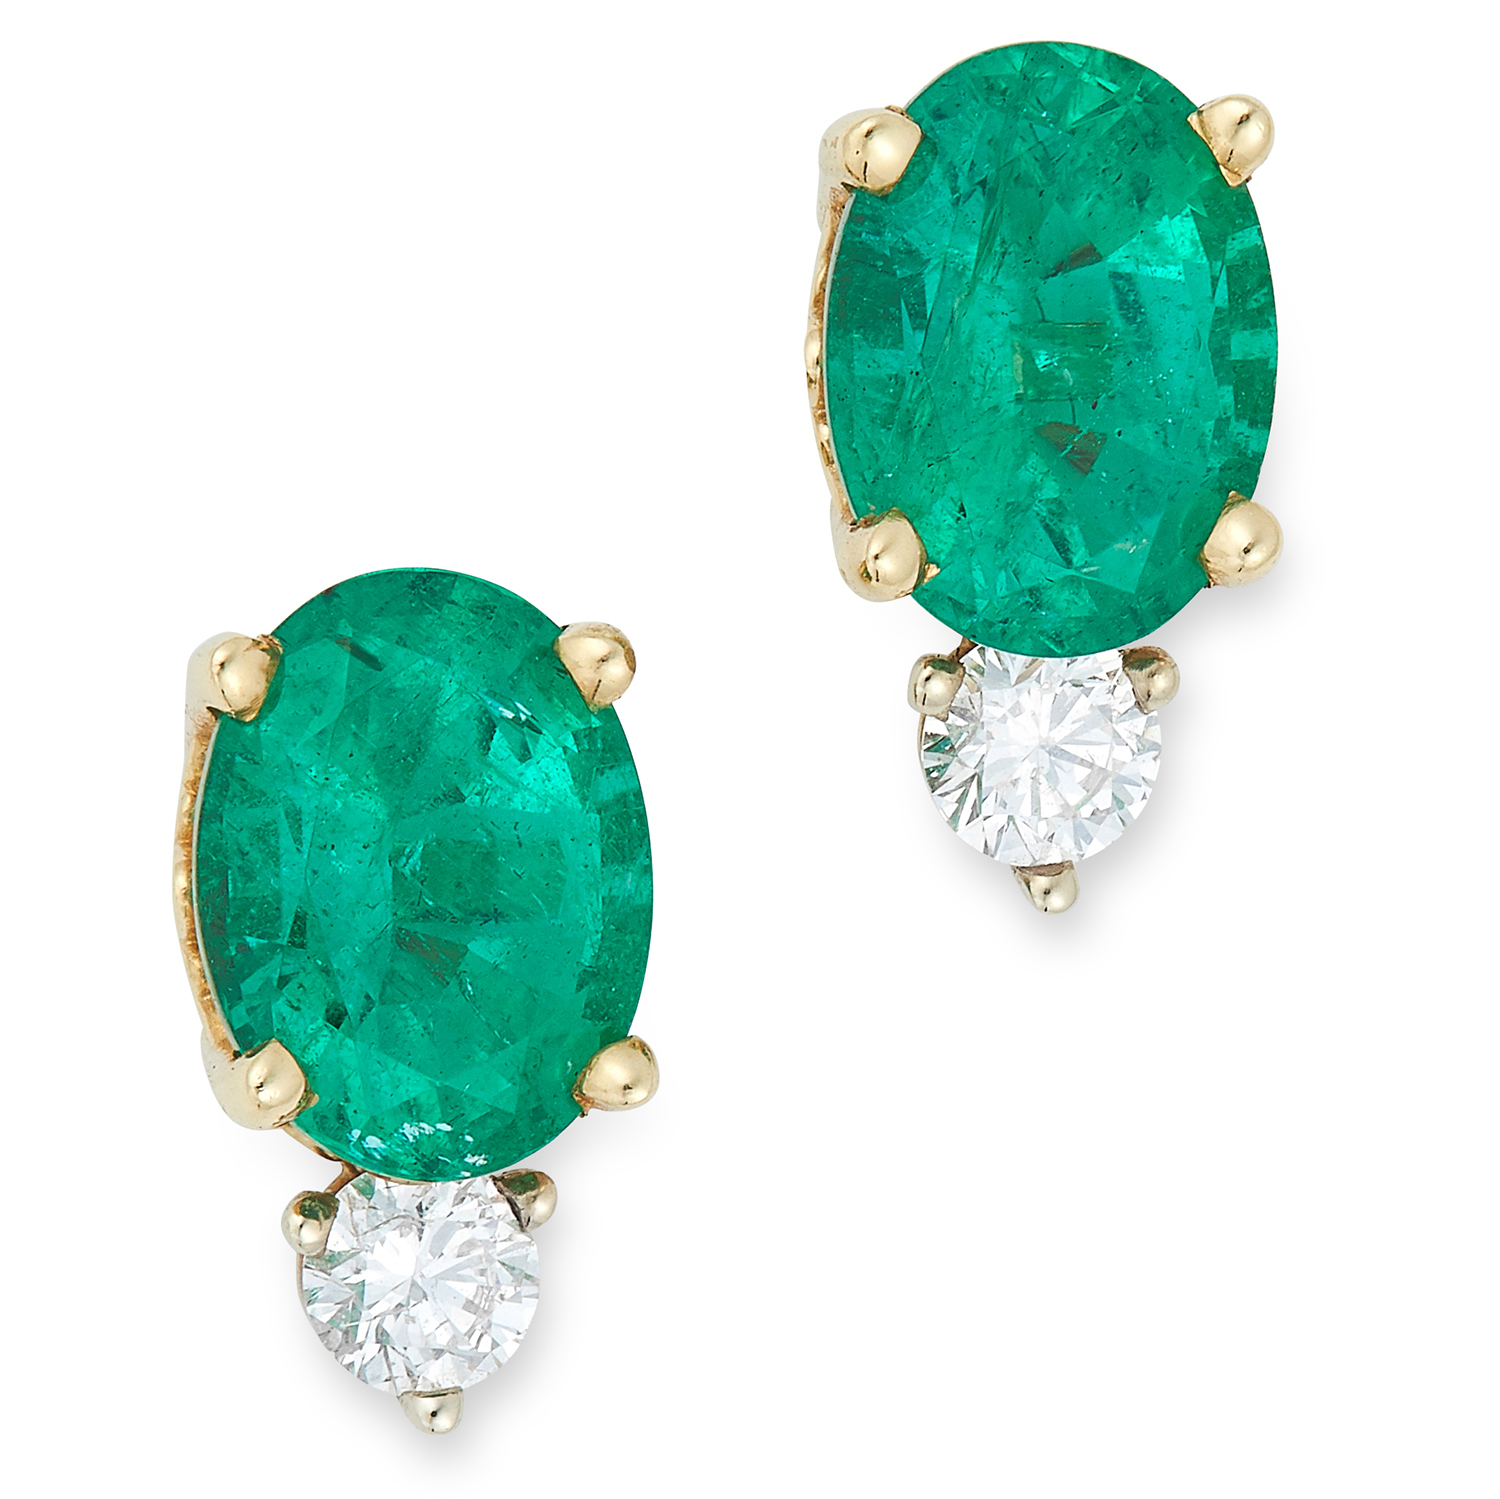 Los 65 - EMERALD AND DIAMOND STUD EARRINGS each set with a round cut diamond totalling approximately 0.10